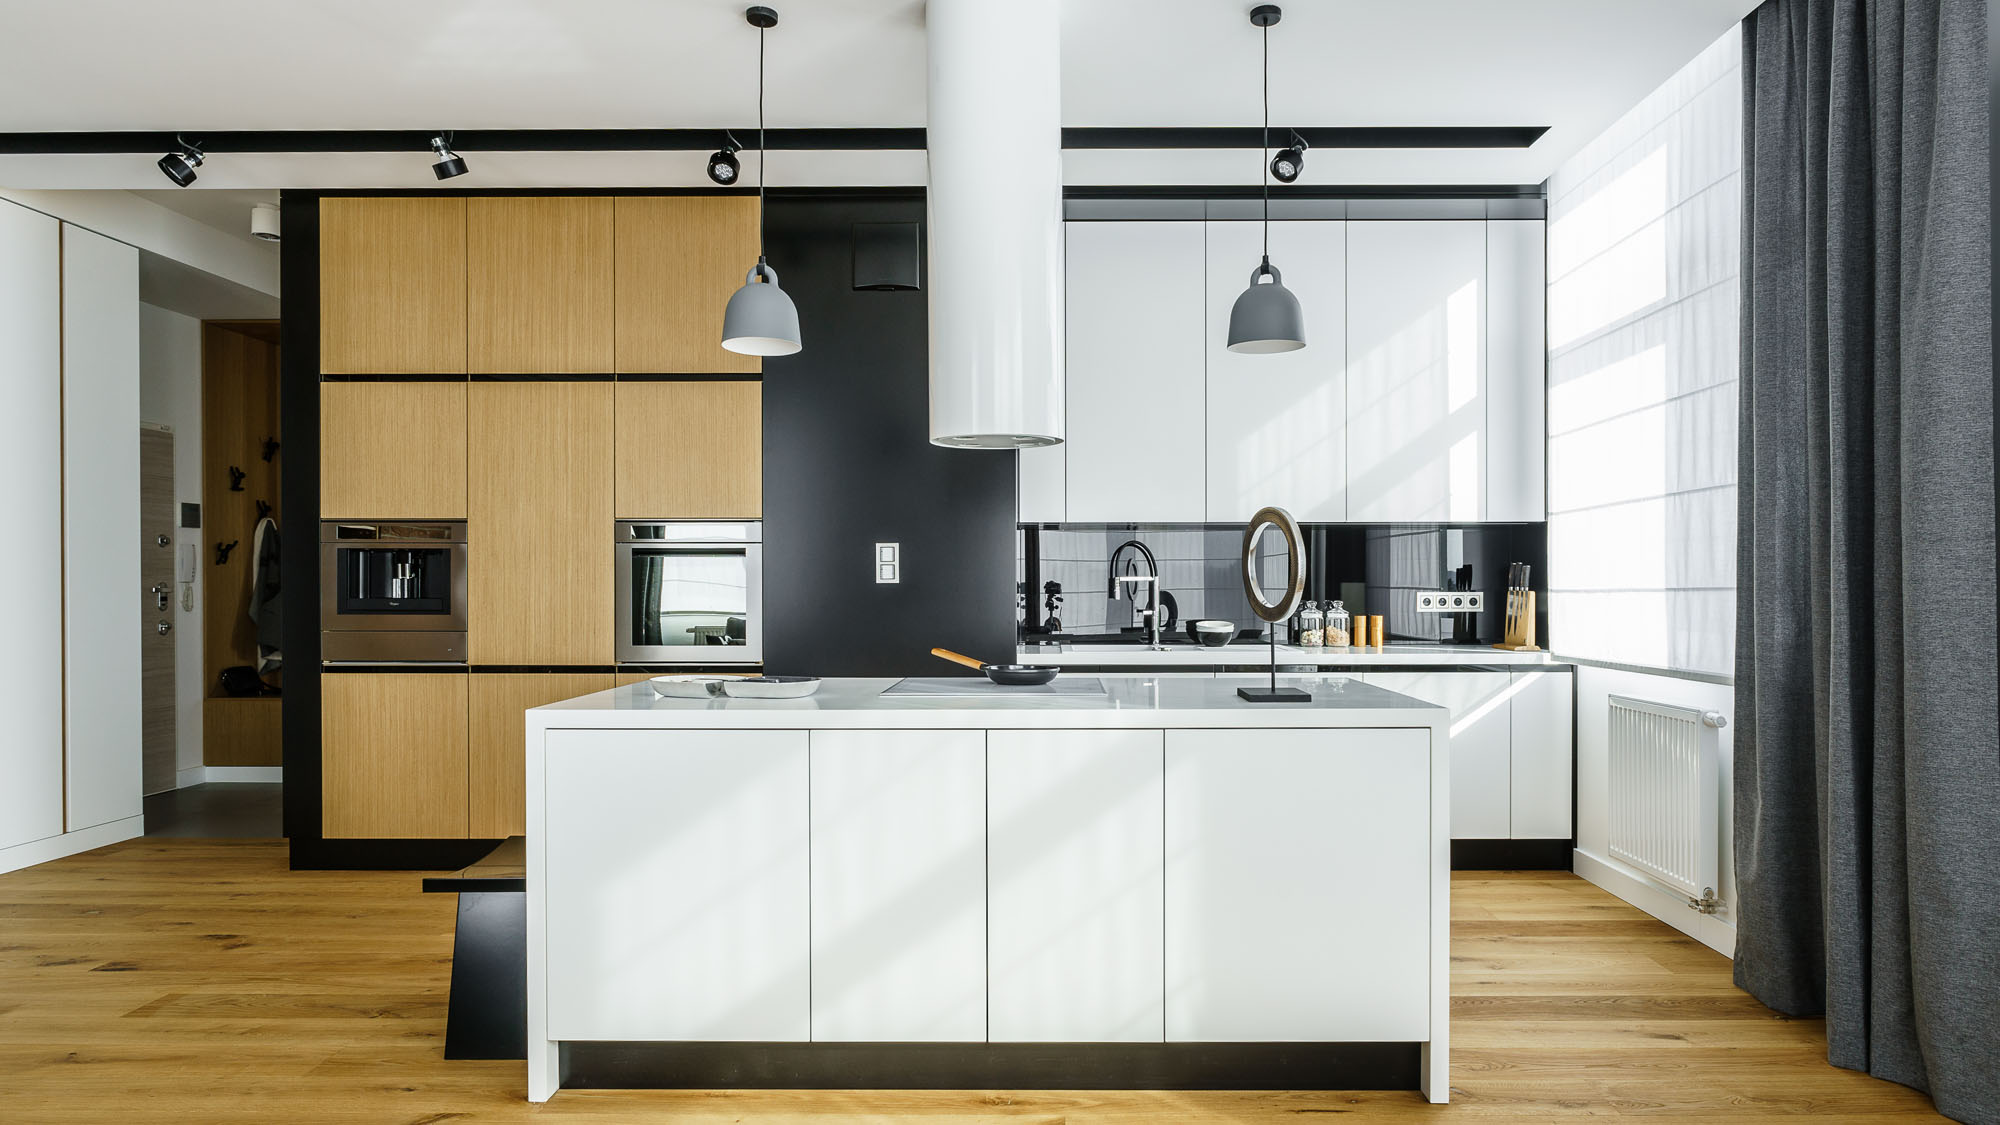 Modern Metallic, Wooden, White Theme Three Bedroom Apartment in Gdynia by Dragon Art-12